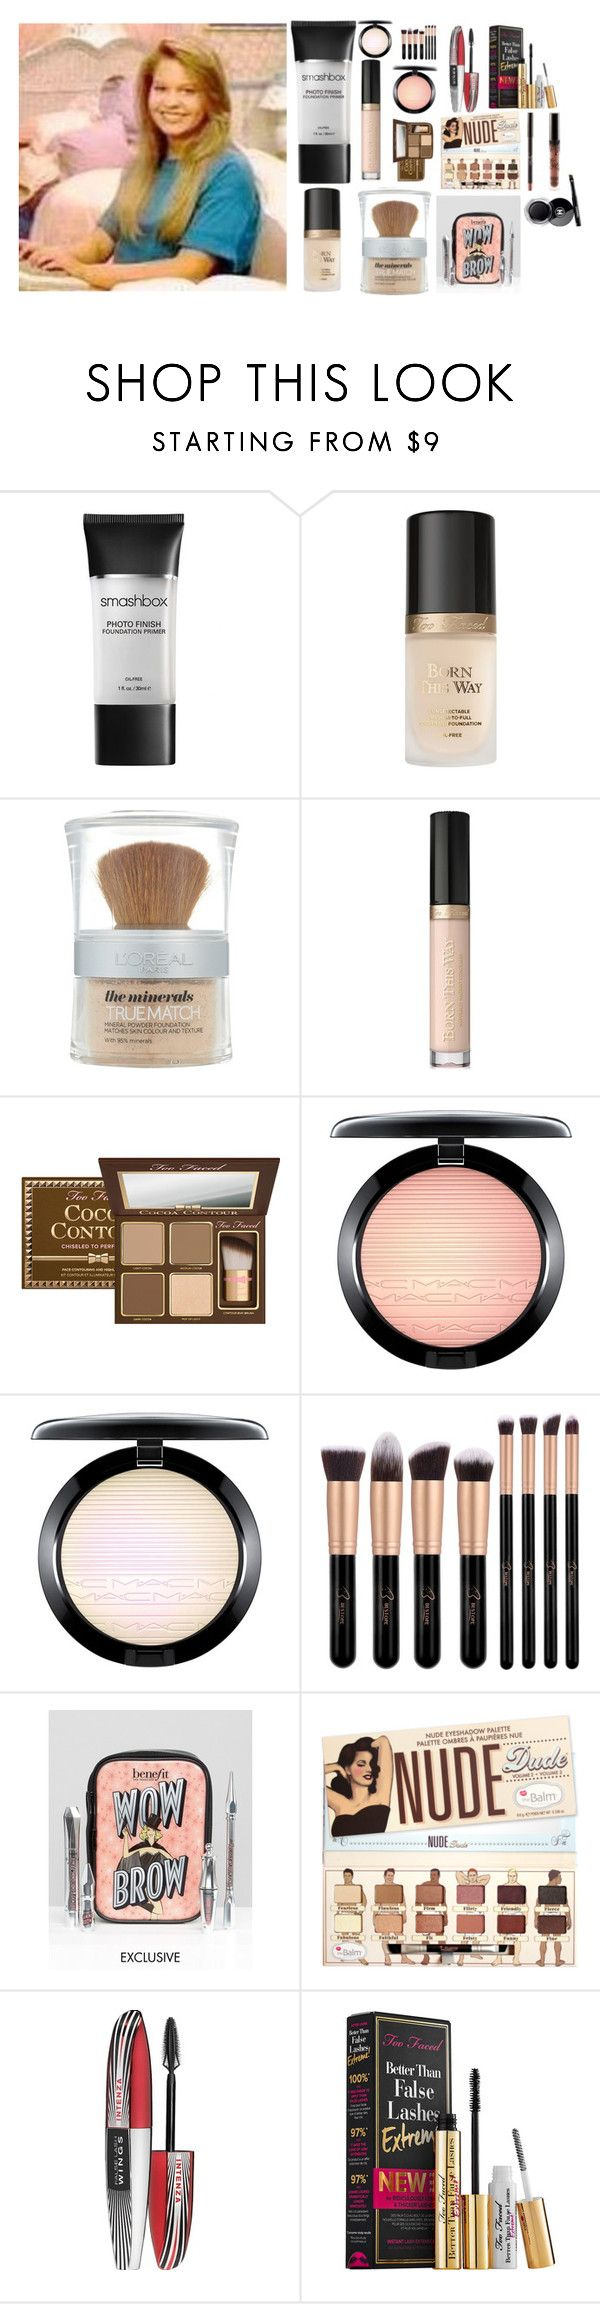 """""""Dj tanner makeup"""" by laurenatria11 ❤ liked on Polyvore featuring beauty, Smashbox, Too Faced Cosmetics, L'Oréal Paris, MAC Cosmetics, Benefit and Chanel"""